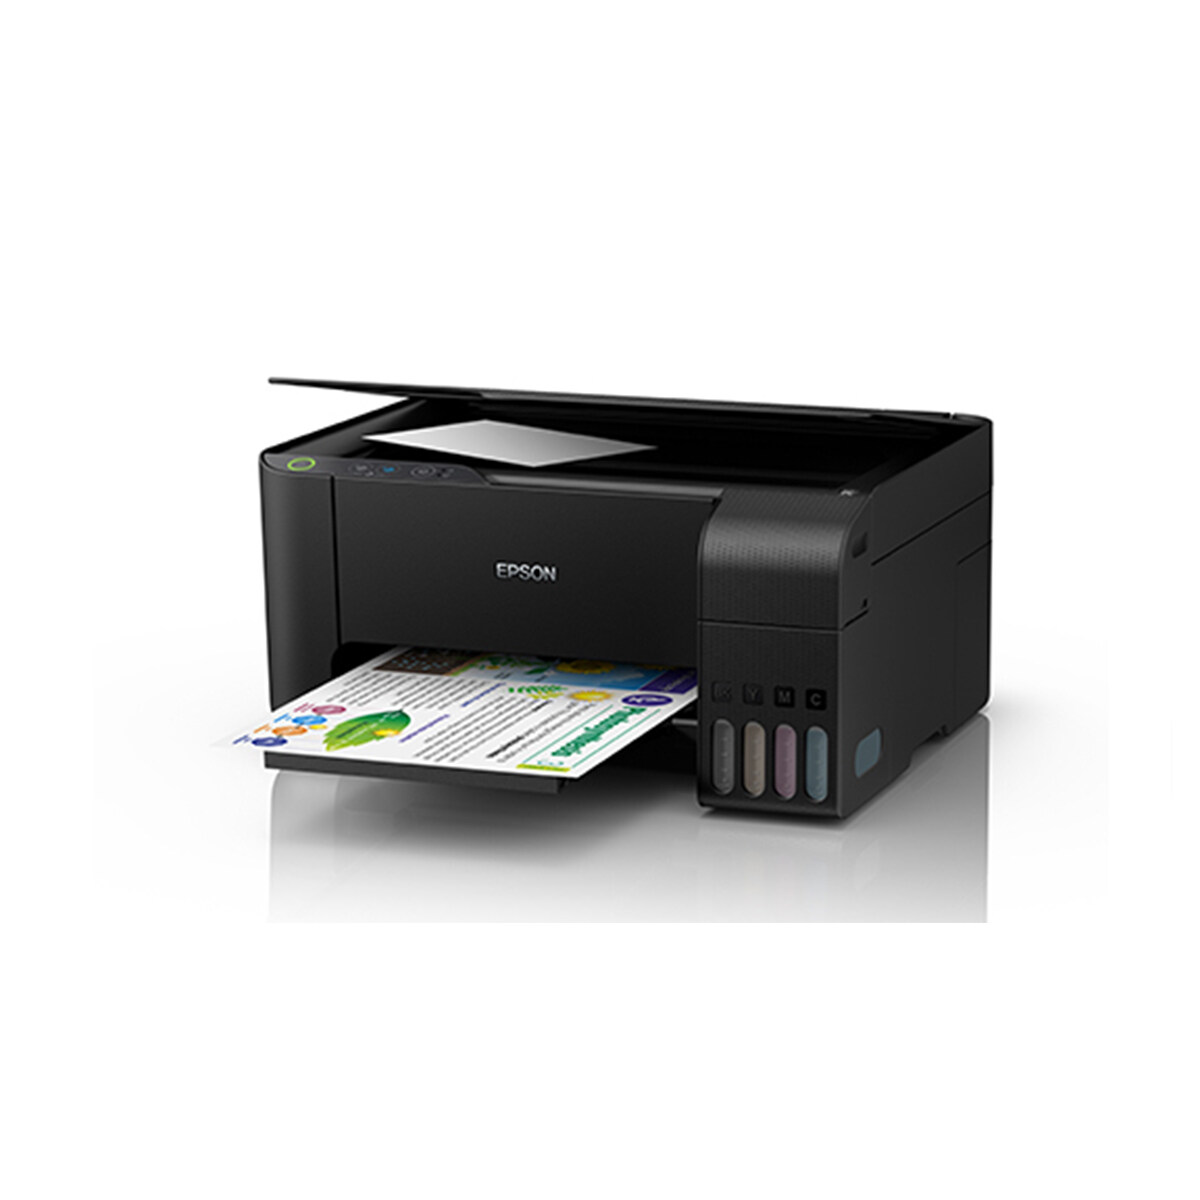 EPSON ECOTANK L3110/L3116 3 IN 1 PRINT SCAN COPY REFILLABLE INK TANK PRINTER, ALL IN ONE MULTI FUNCTION COLOUR PRINTER, ANTI UV INK, WITH 1 SET ORIGINAL INK (BLACK/CYAN/MAGENTA/YELLOW) 3 YEARS WARRANTY EPSON PRINTER L3110 L3116